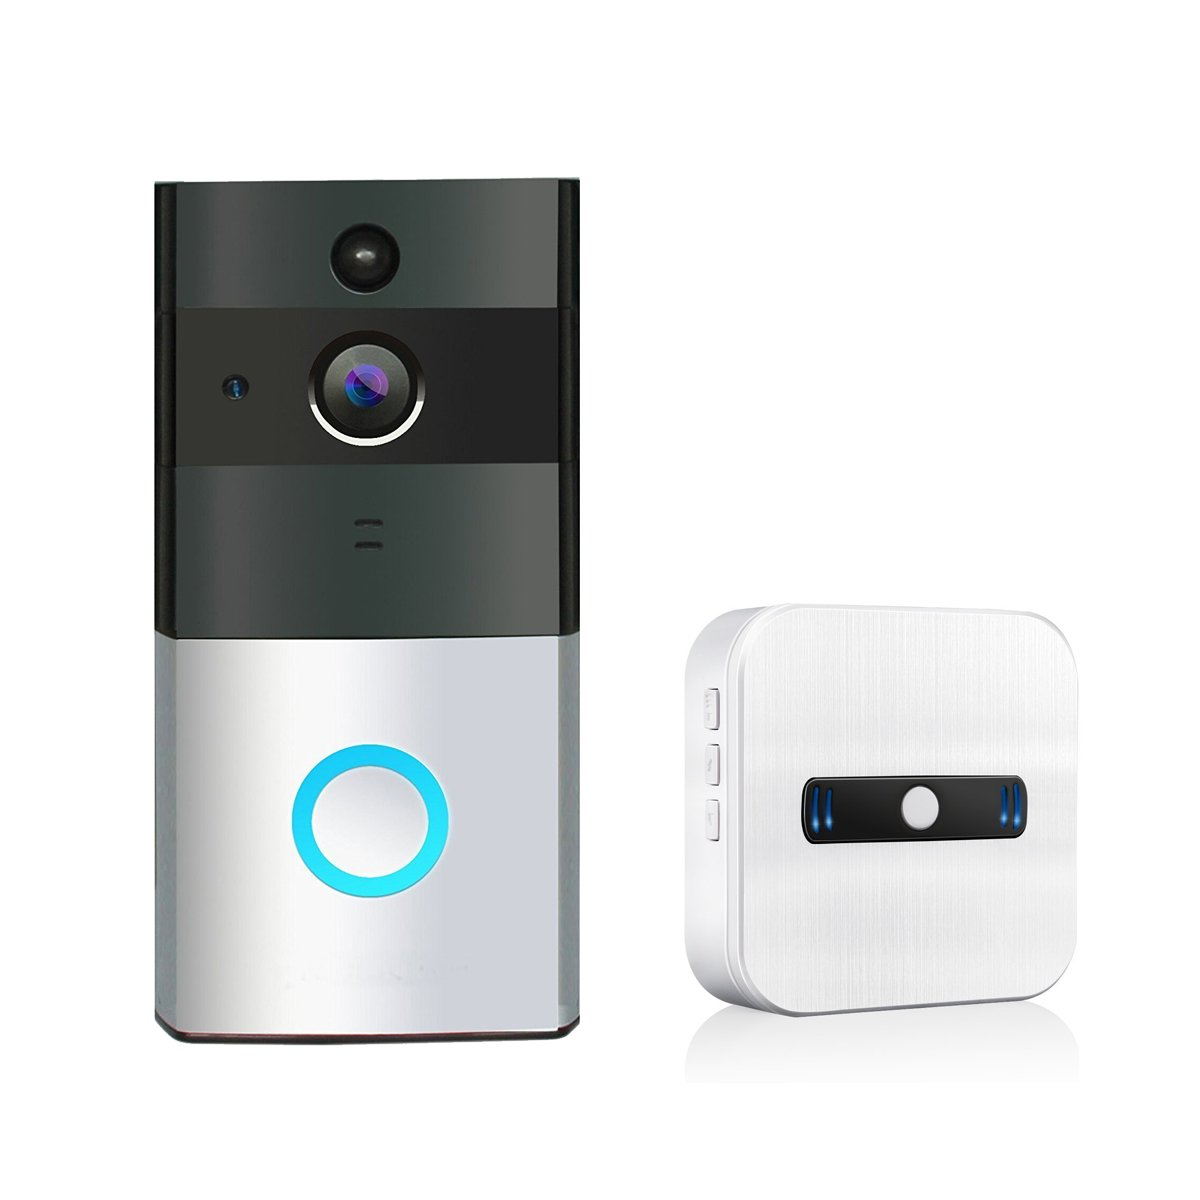 TIVDIO ZC-IP08 Video Doorbell Wireless Doorbell Camera 720P HD Wi-Fi Security Camera with 1 Indoor Chime Built-in 8G Card, App Control for IOS and Android